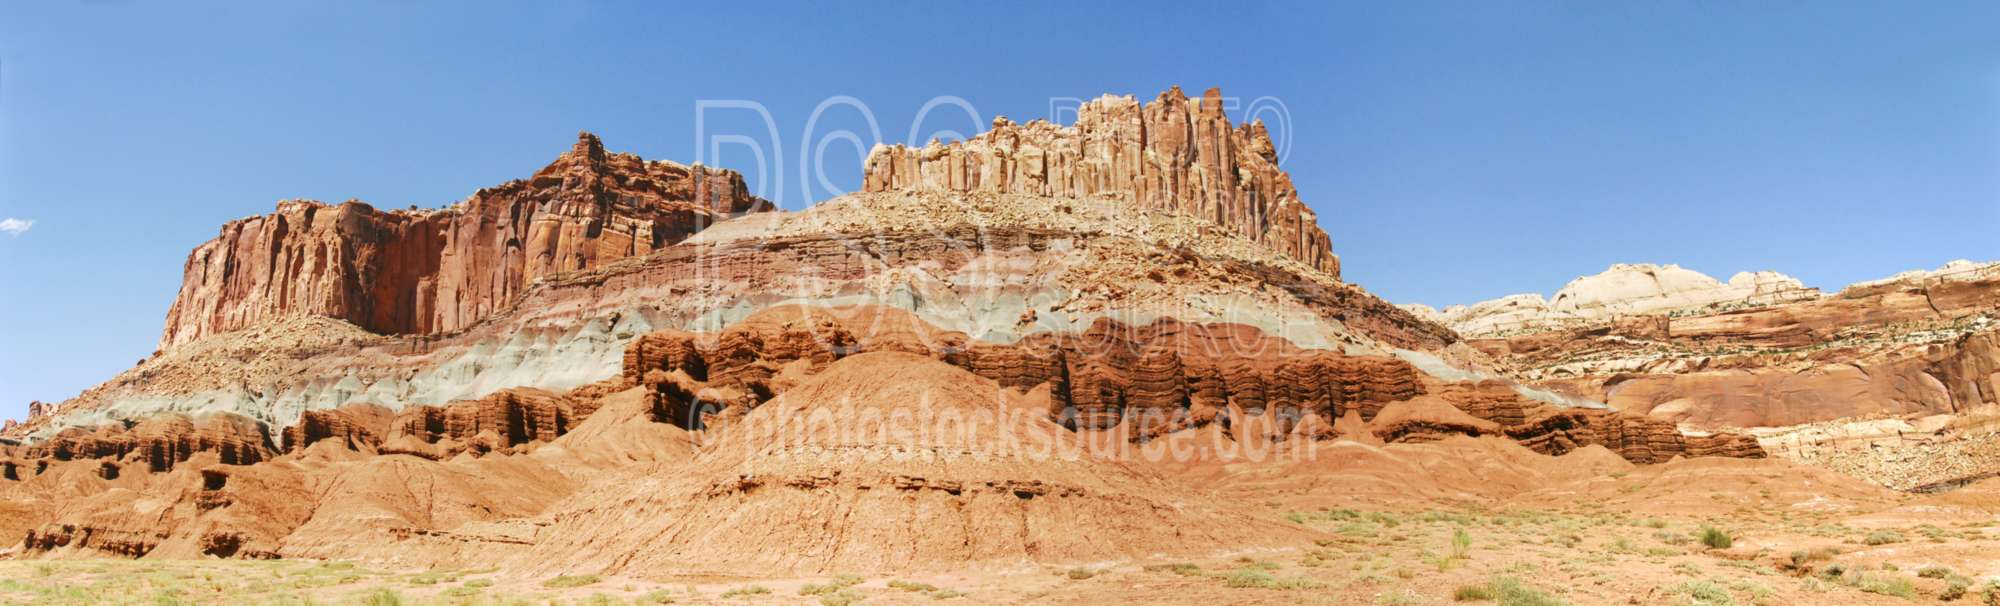 The Castle Capitol Reef